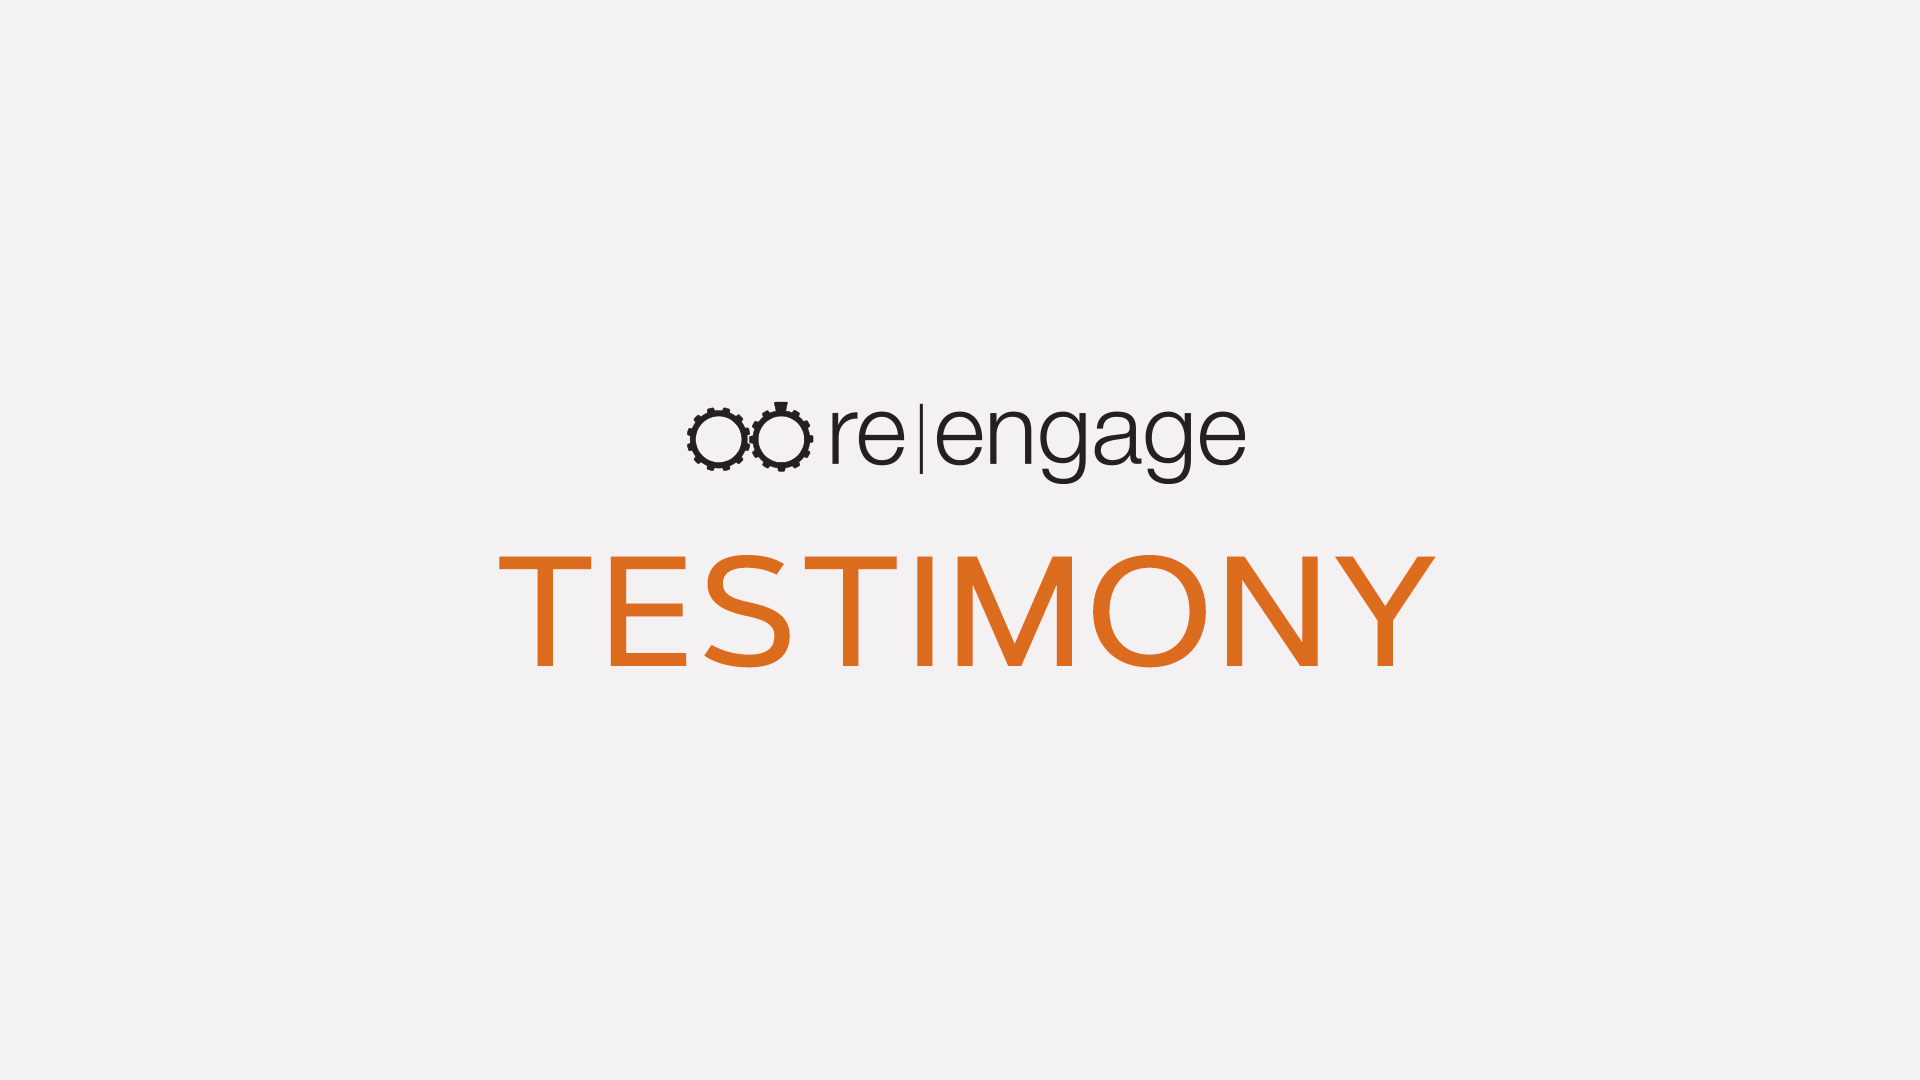 Divorce Panel - re|engage Testimony